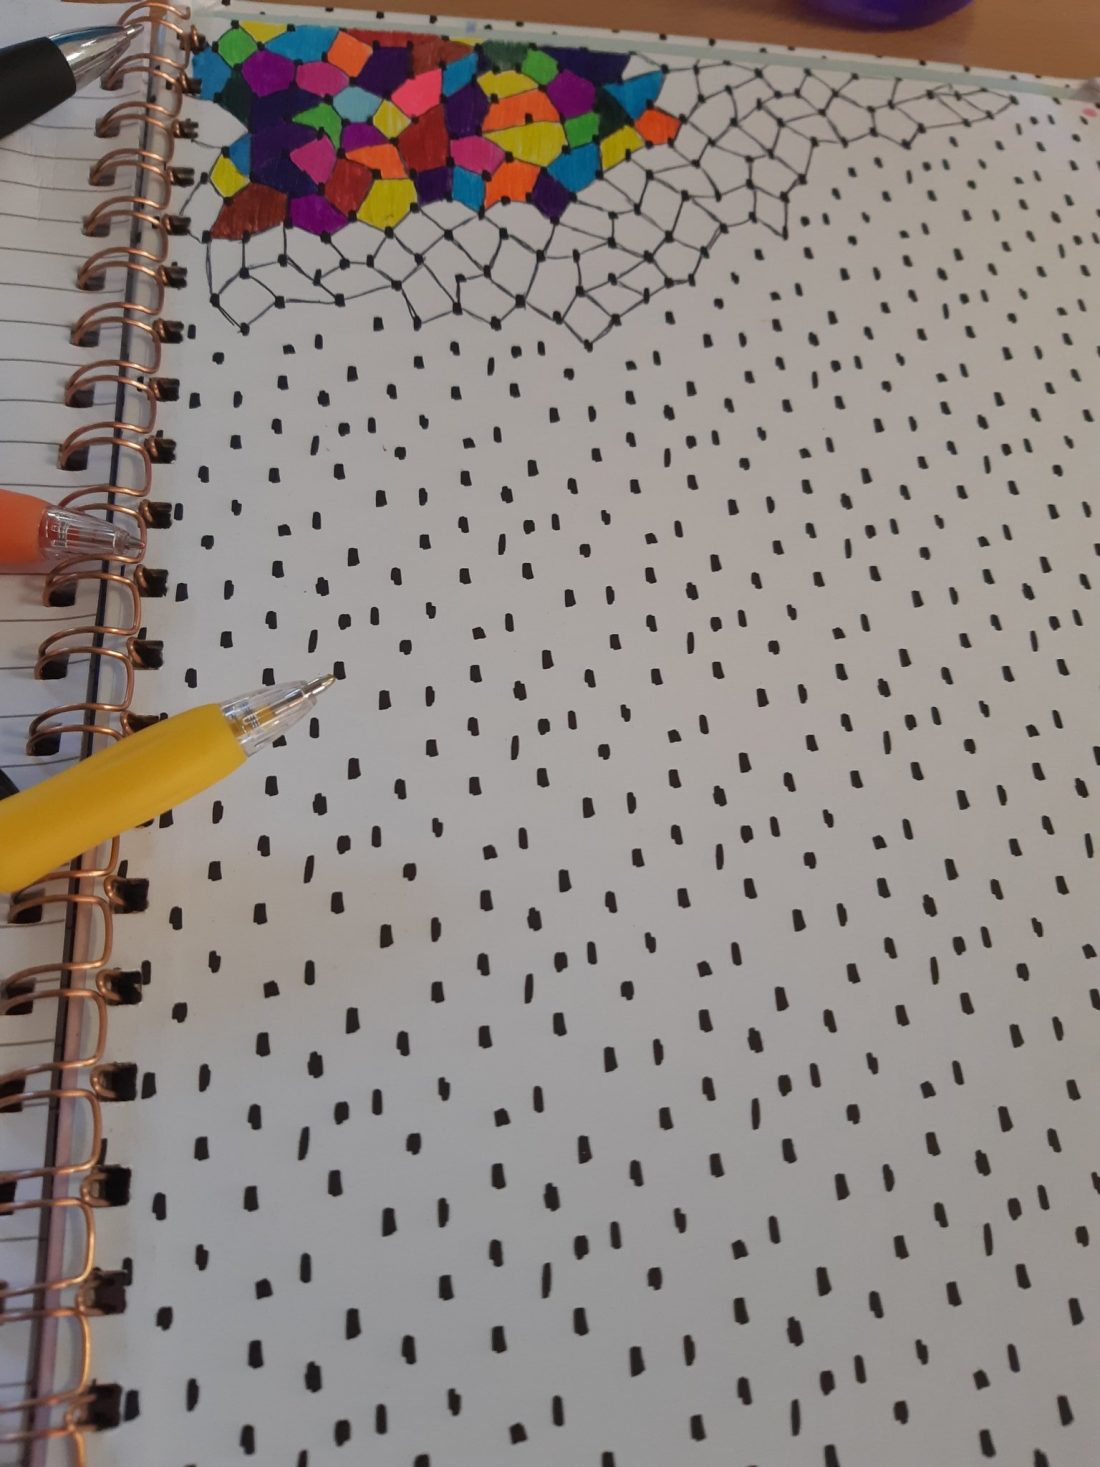 A photo of Morgan's notebook, which xe has begun to colour in with an irregular pattern, using biro